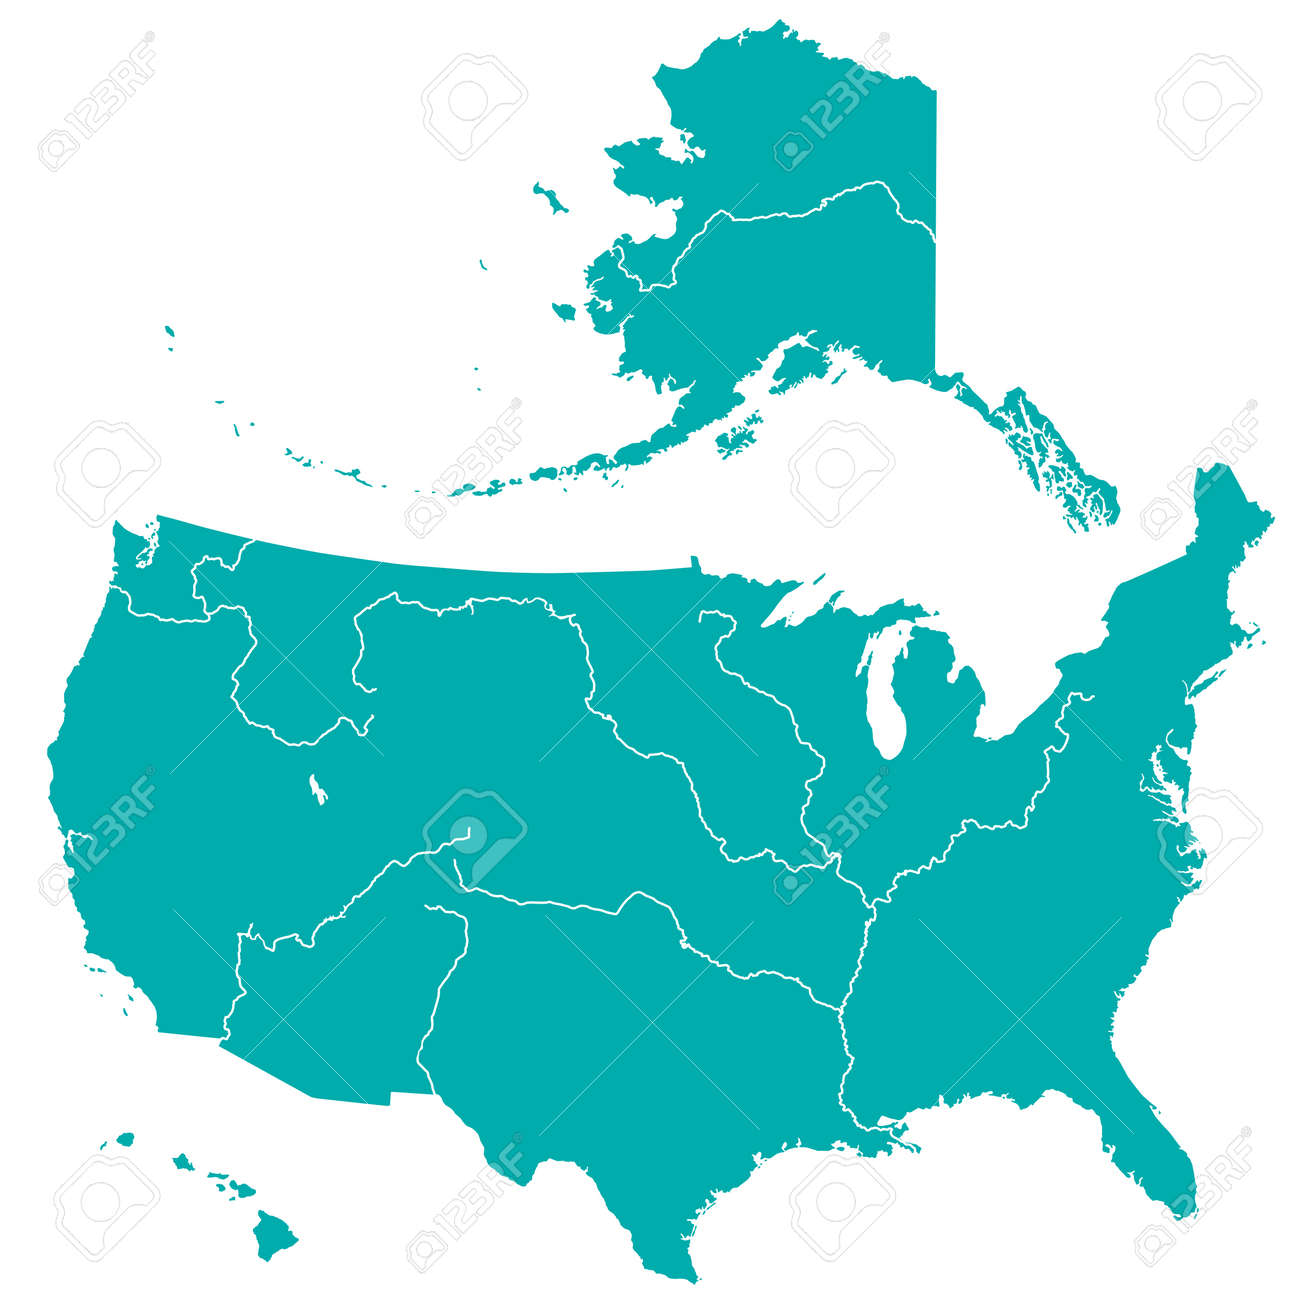 Terrestrial Silhouette Map Of The United States With Major Rivers - Us map with major rivers